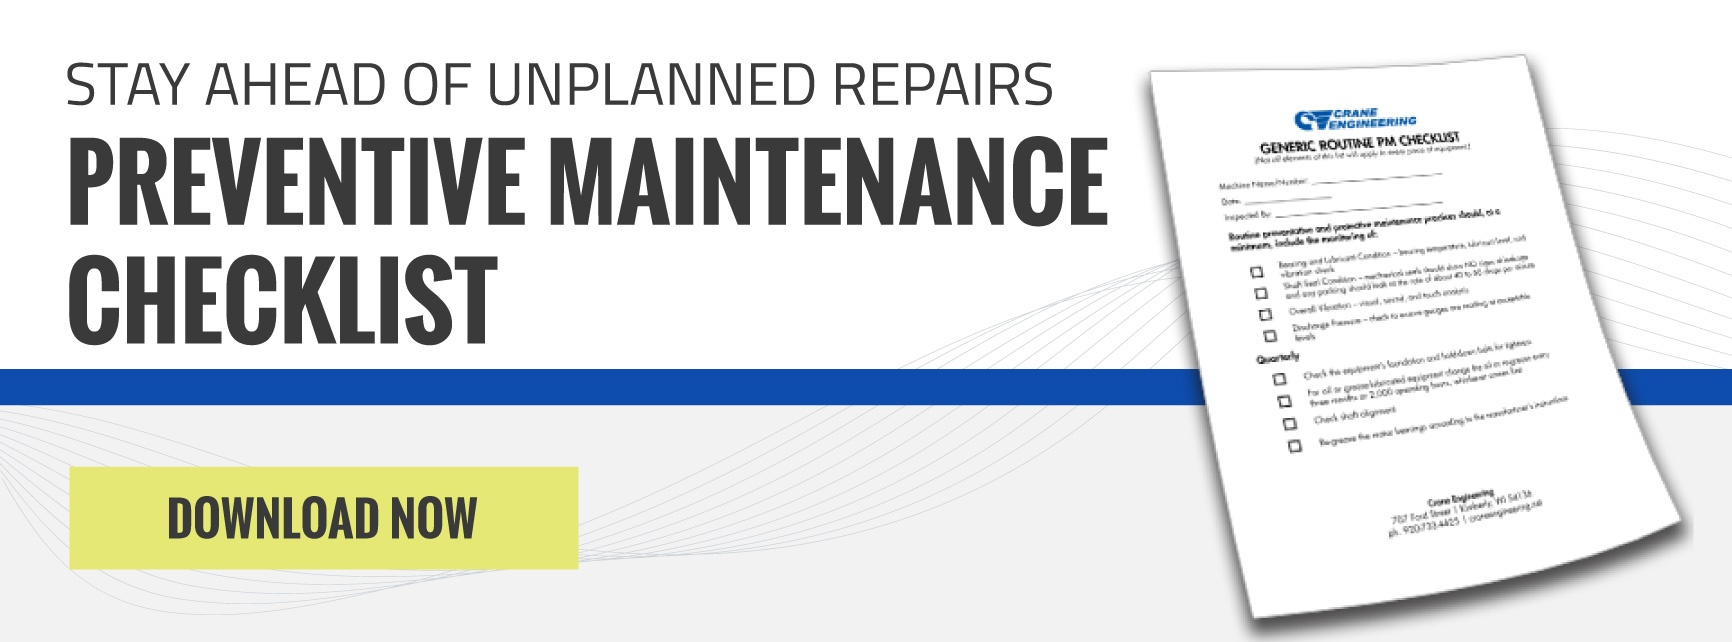 Stay ahead of unplanned repairs with the preventative maintenance checklist